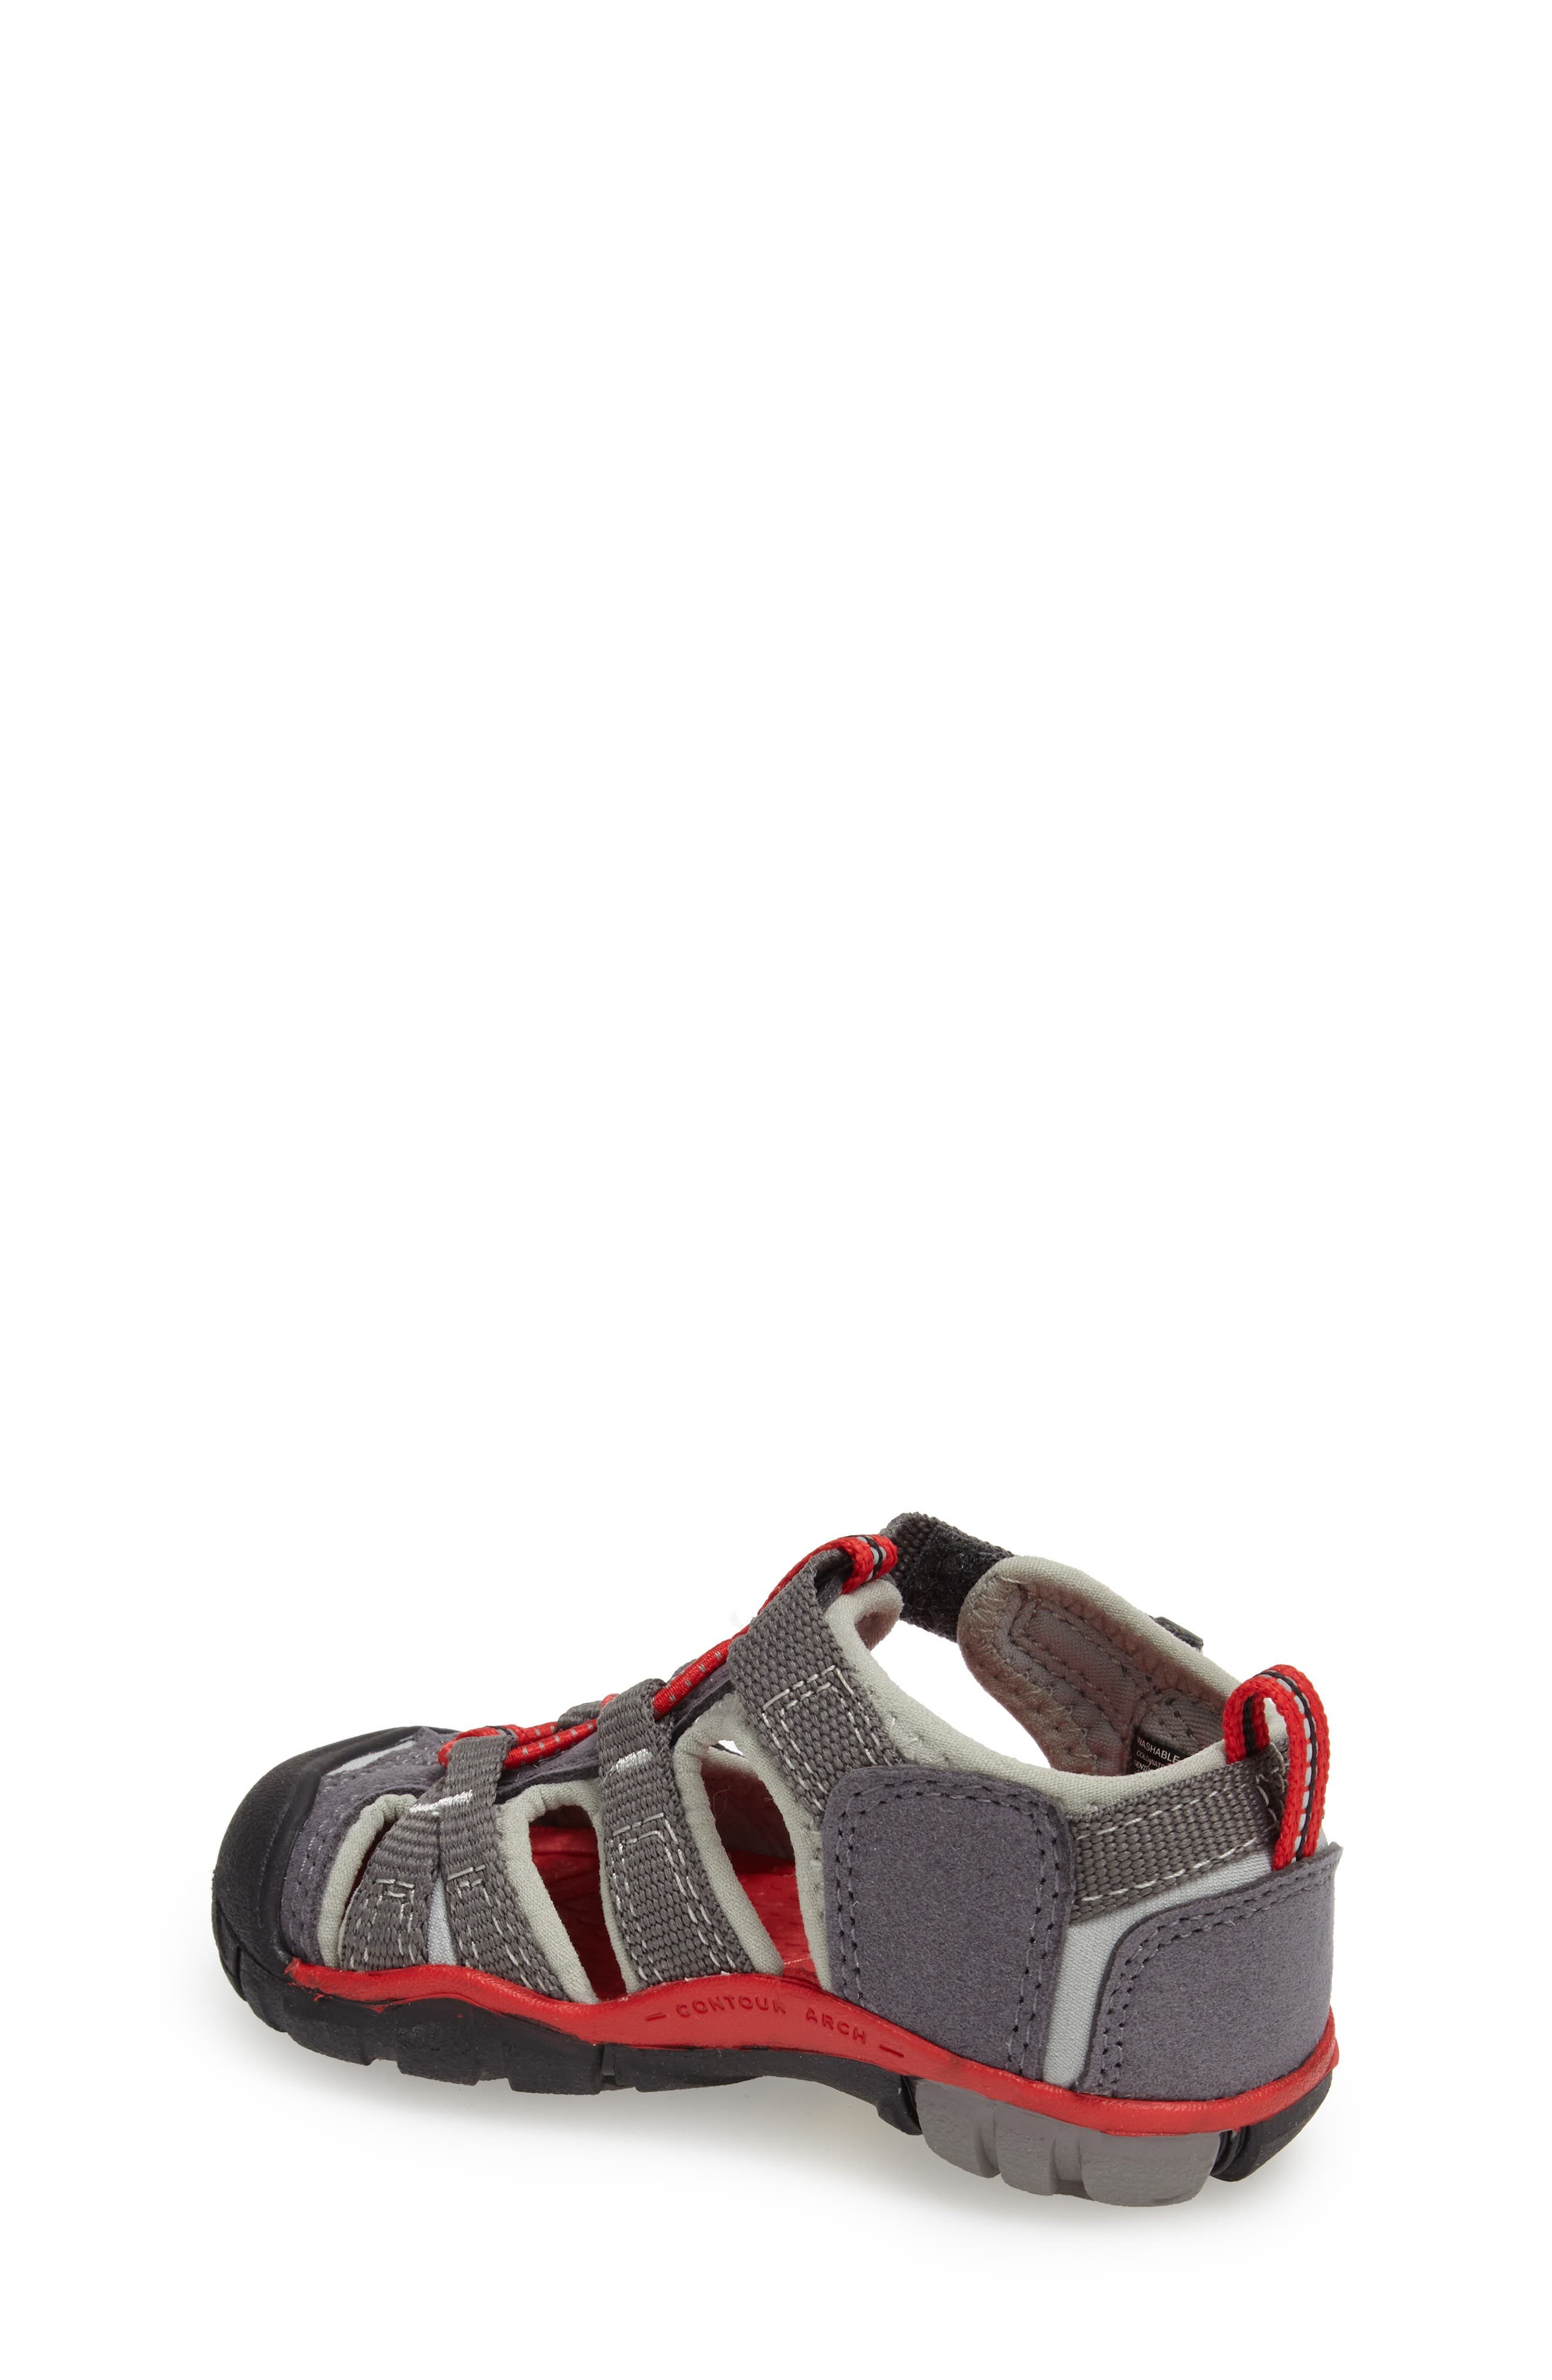 Seacamp II Water Friendly Sandal,                             Alternate thumbnail 2, color,                             Magnet/ Racing Red